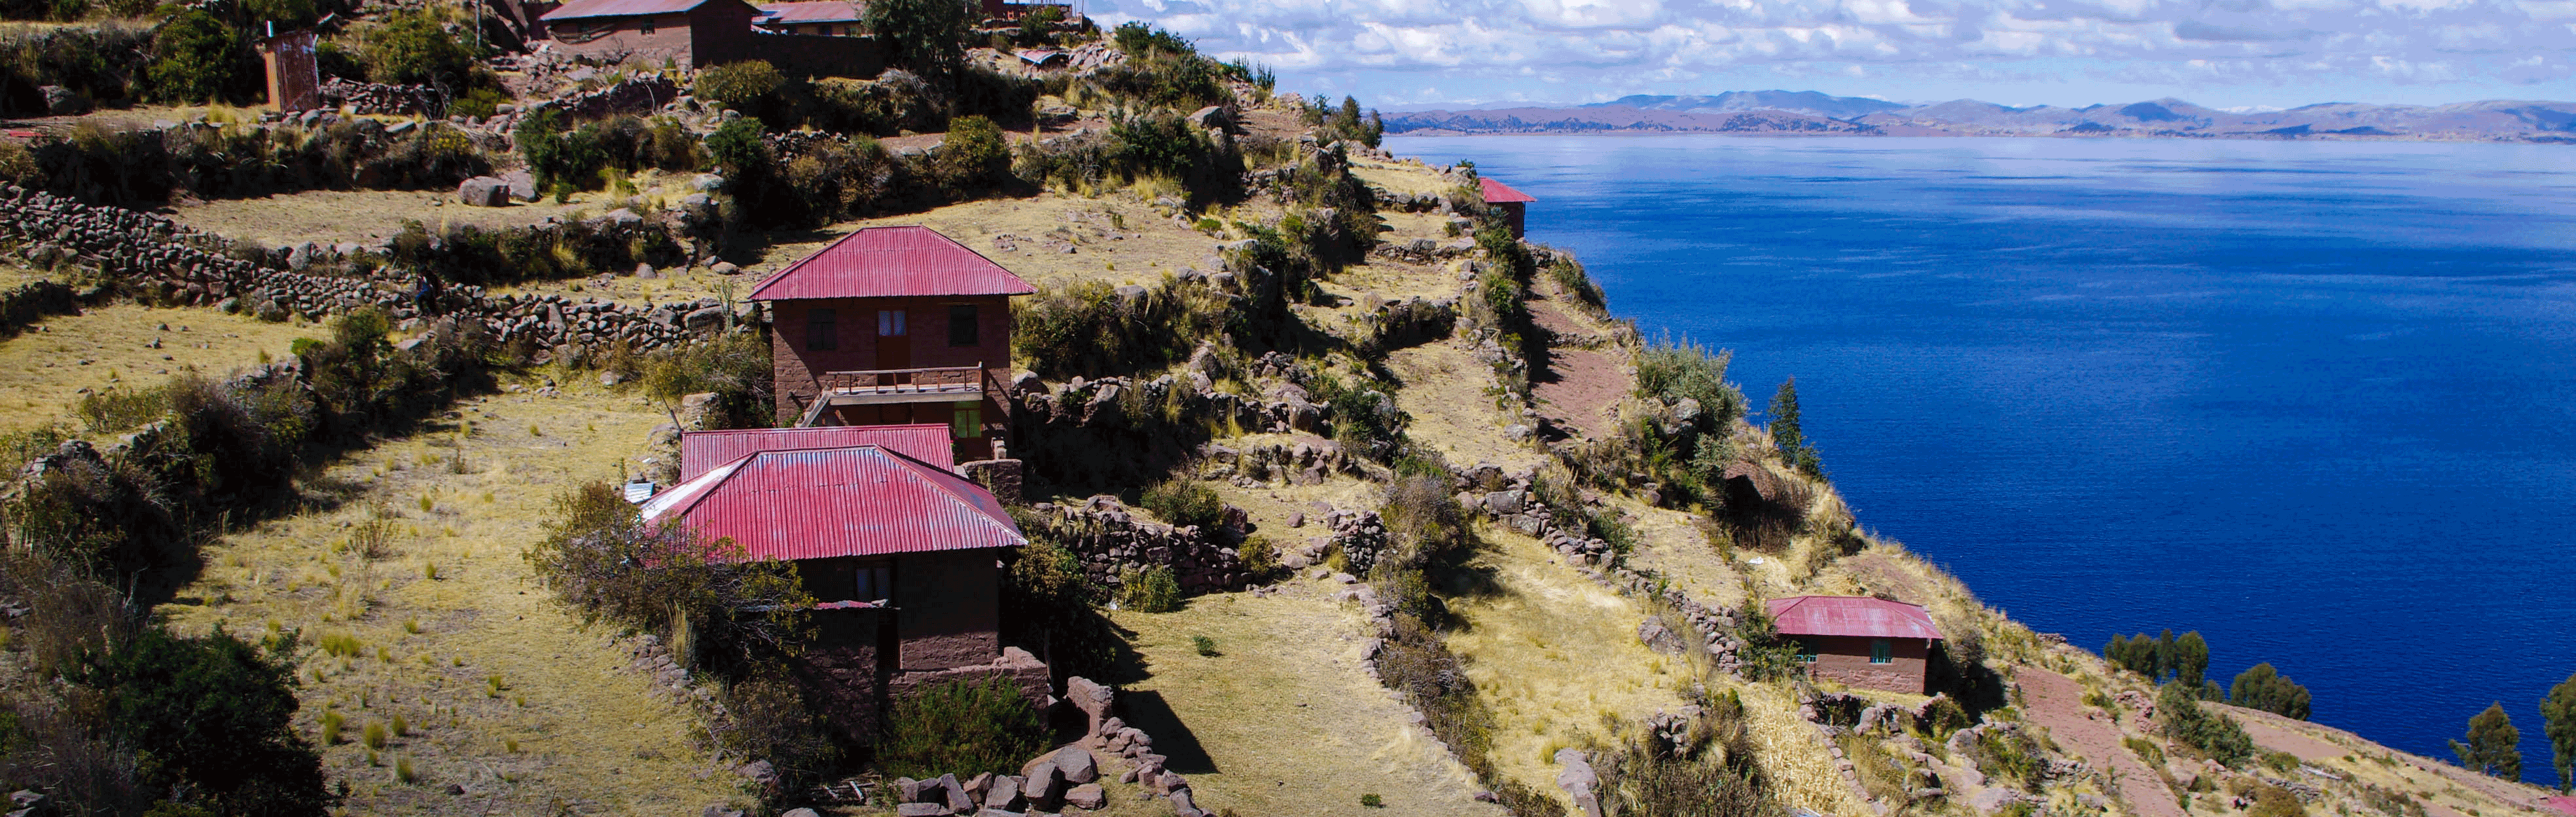 View Lake Titicaca